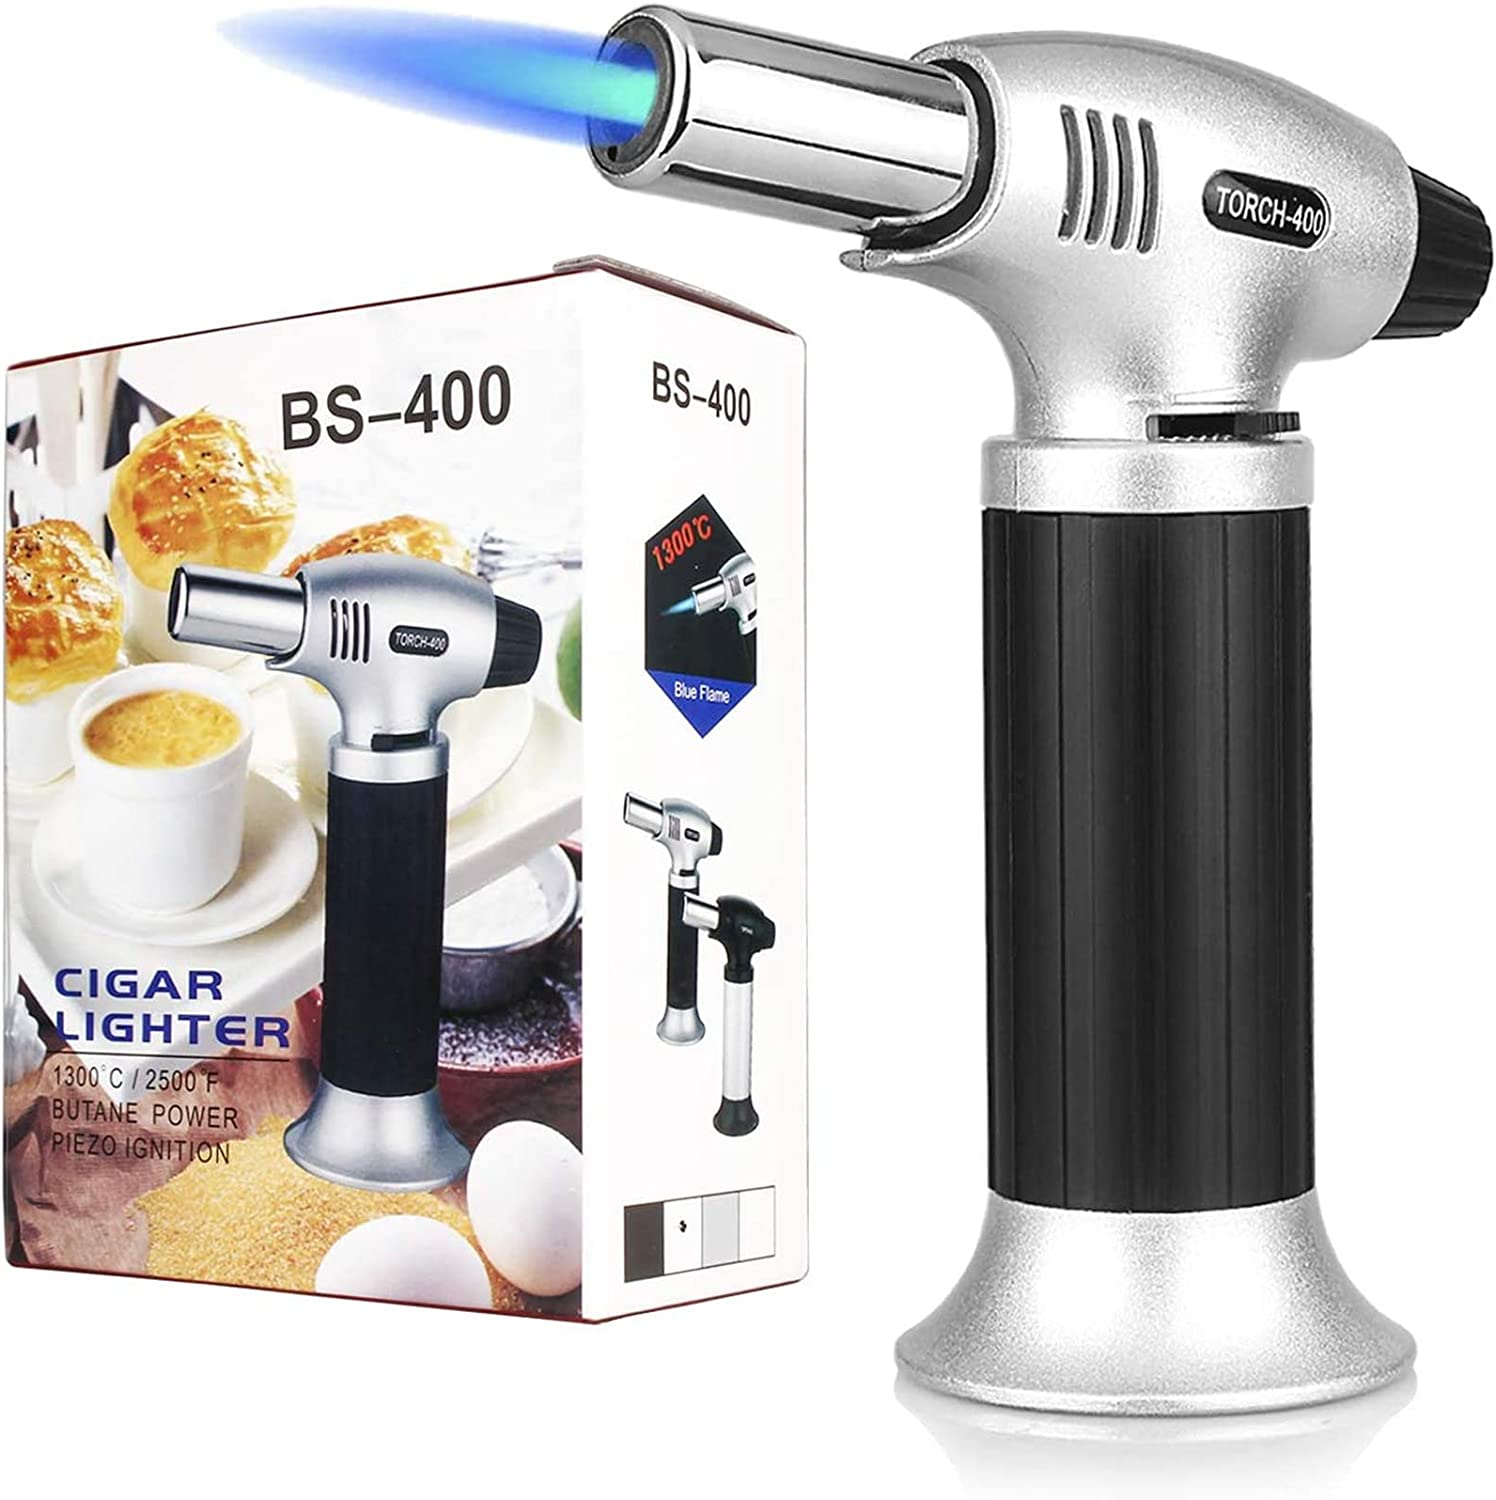 RED Butane Gas Not Included Creme Brulee Refillable Culinary Butane Torch Lighter for Desserts Kitchen Butane Torch BBQ and Baking,Mini Blow Torch Lighter with Safety Lock and Adjustable Flame